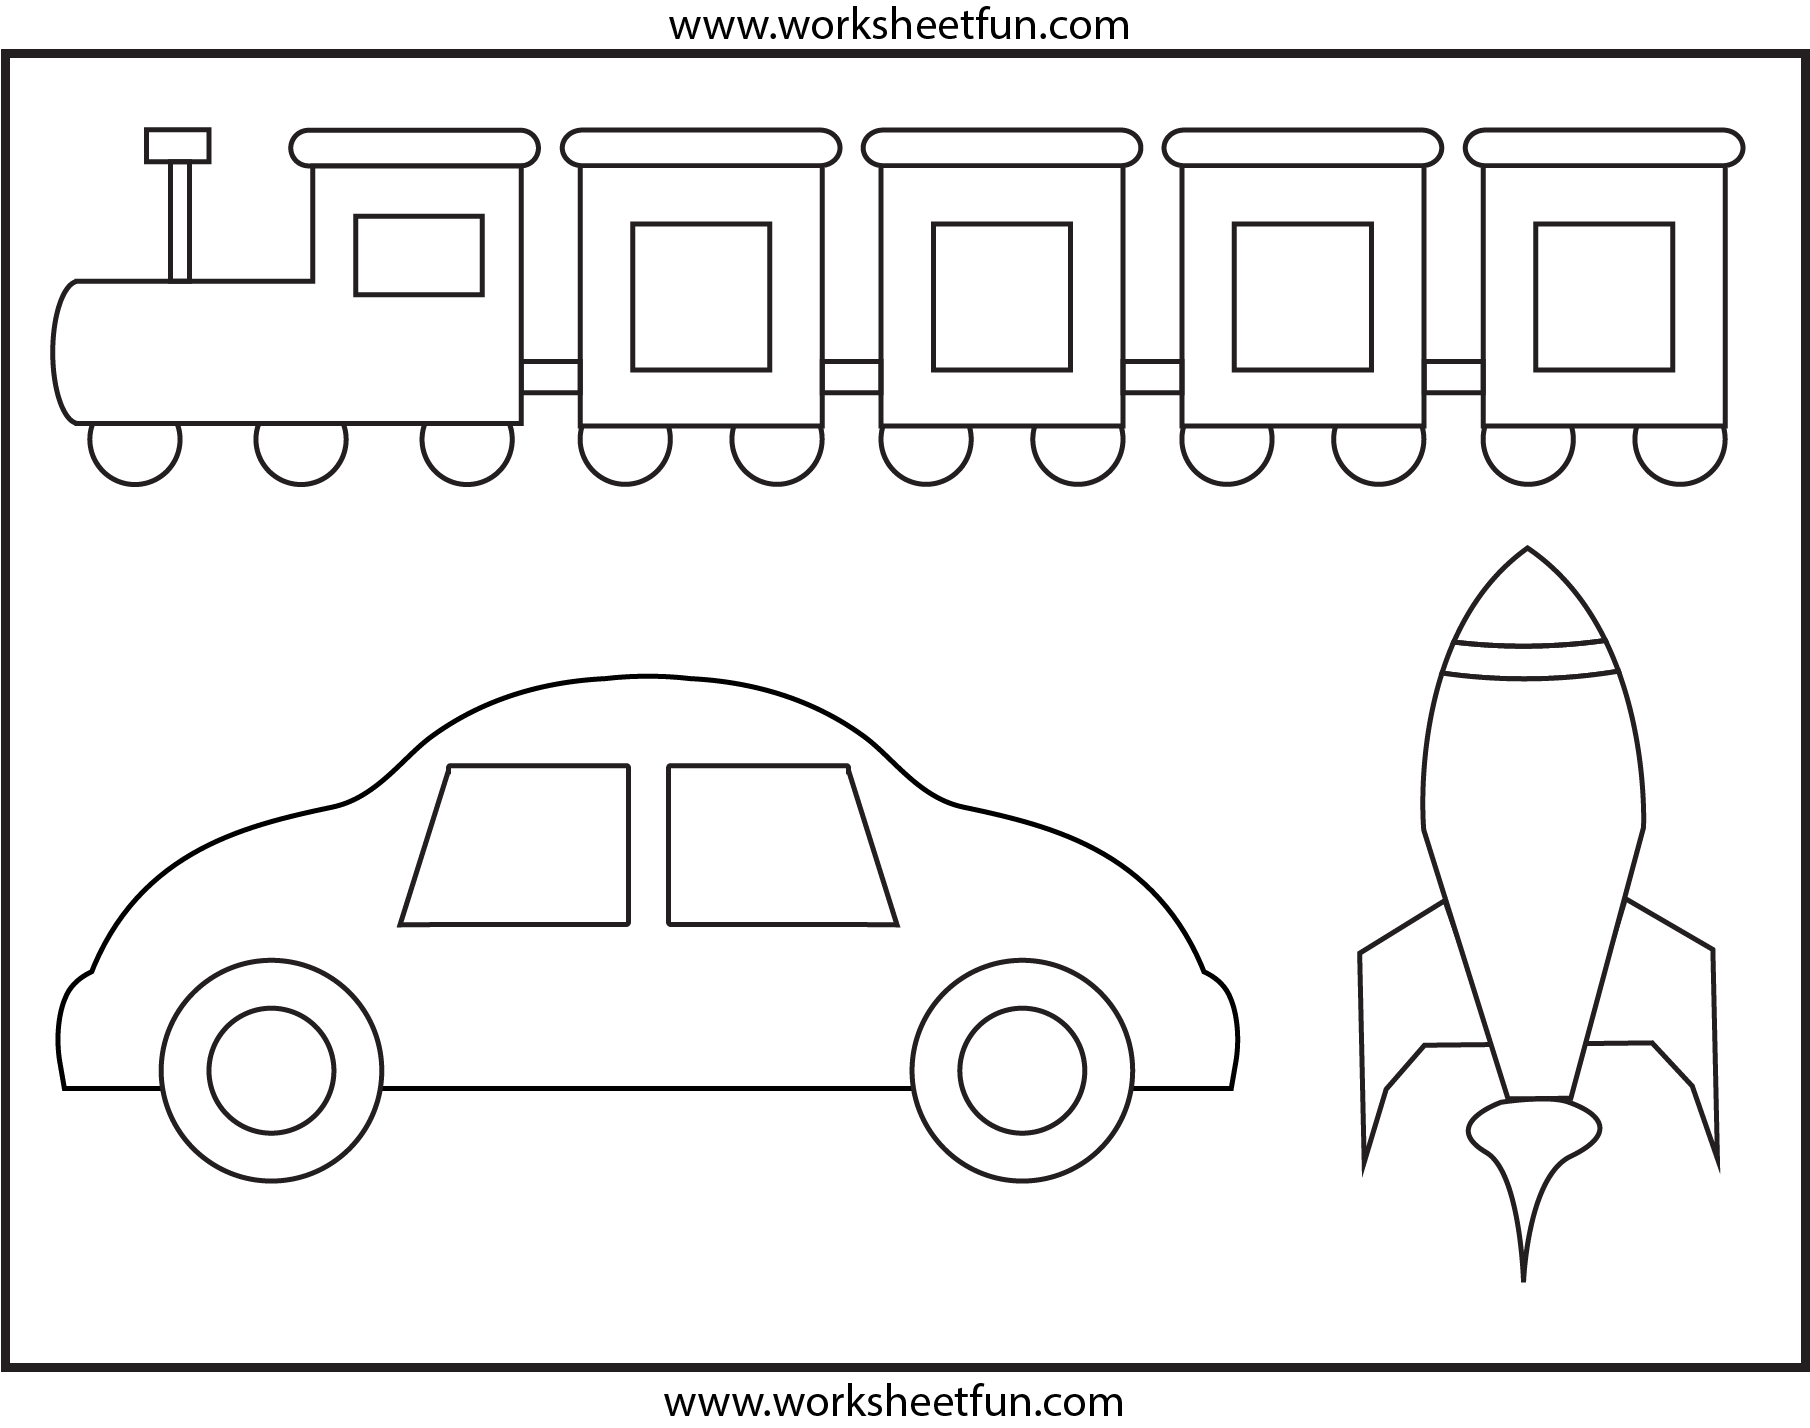 Coloring Worksheet - Transportation